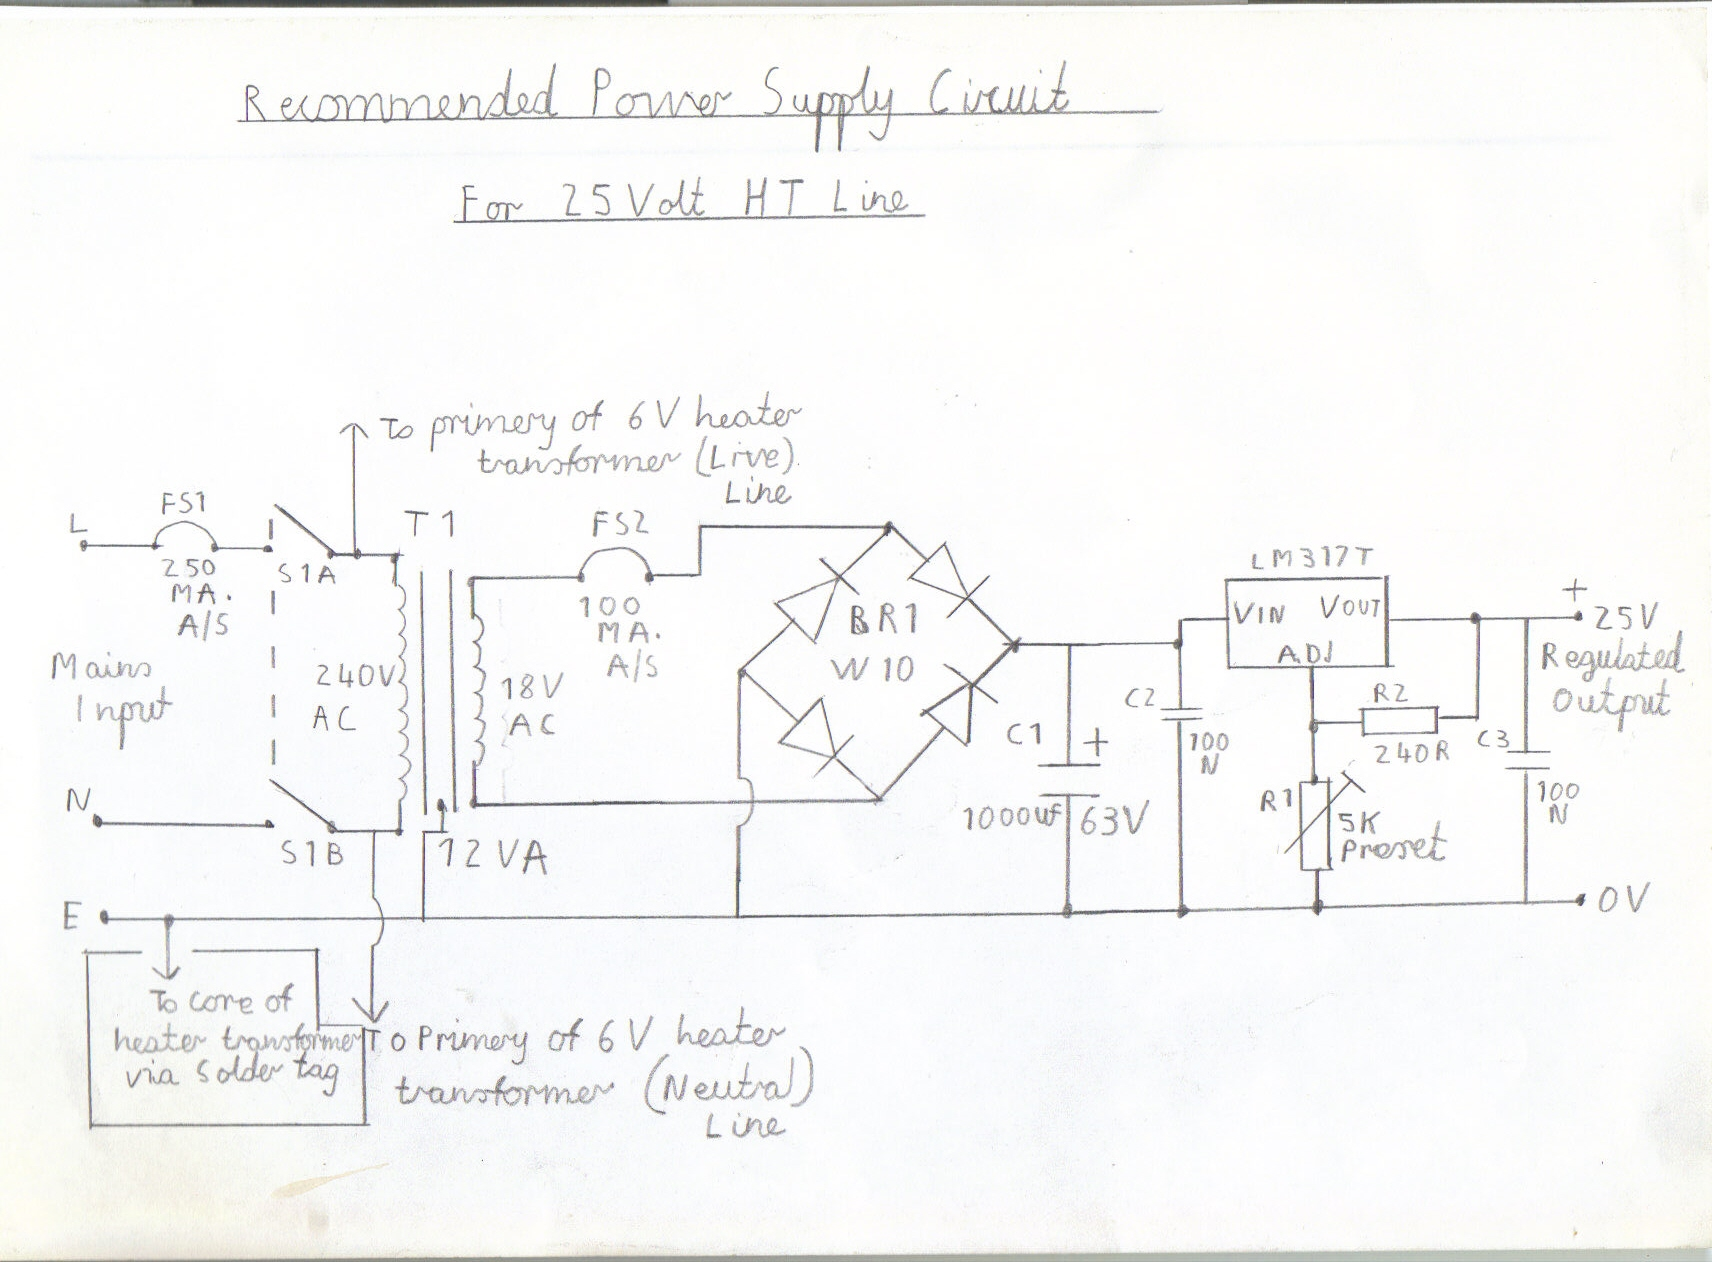 wiring diagram of ht panel wiring image wiring diagram 6 valve vhf fm pulse counting fm tuner using safe 25volt dc ht line on wiring